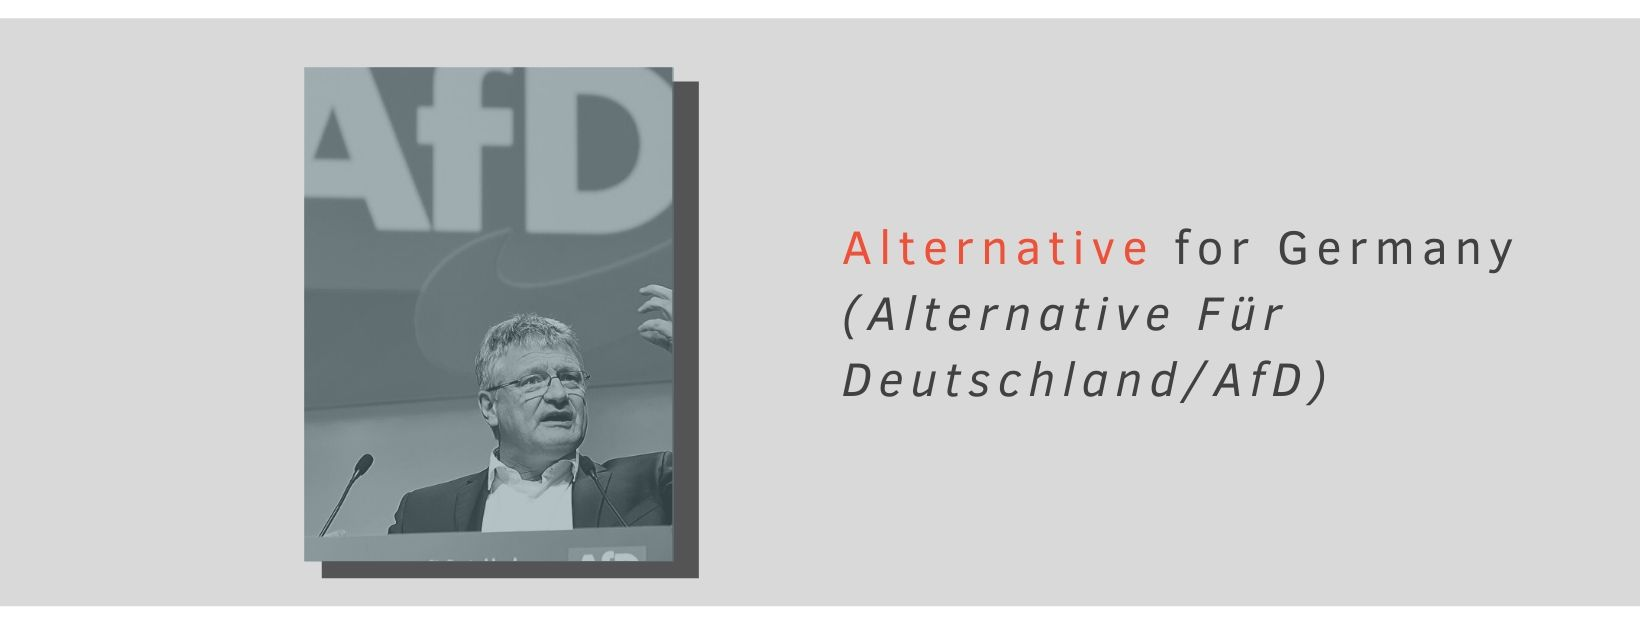 AFD leader with a backdrop of the AfD logo